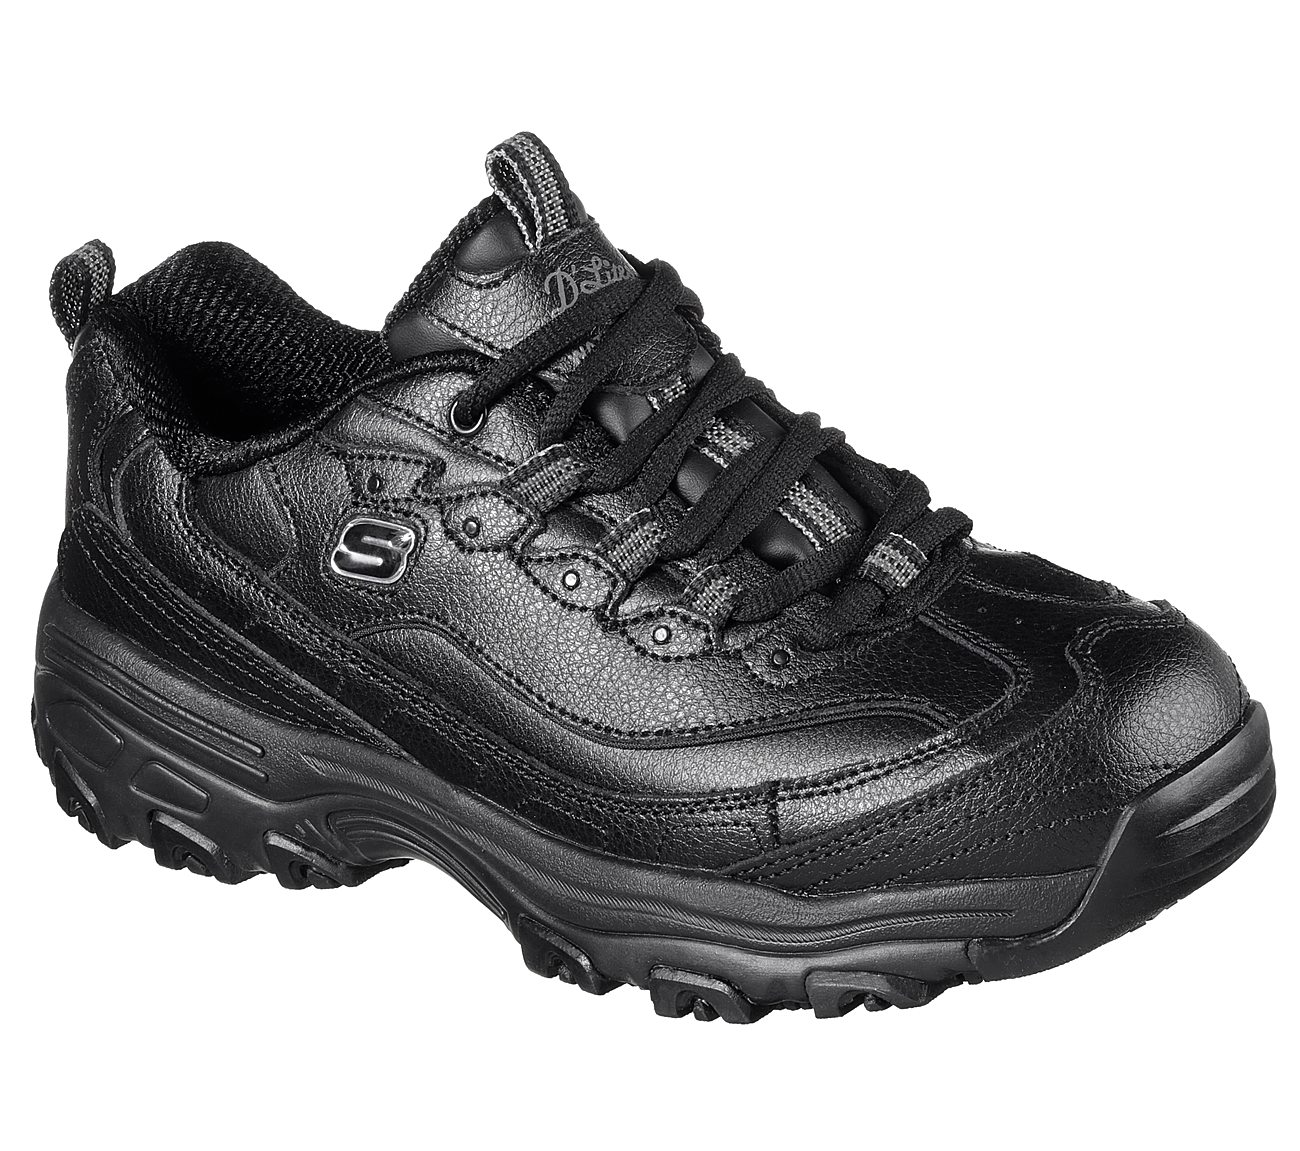 SKECHERS Work D'lite SR - Marbleton